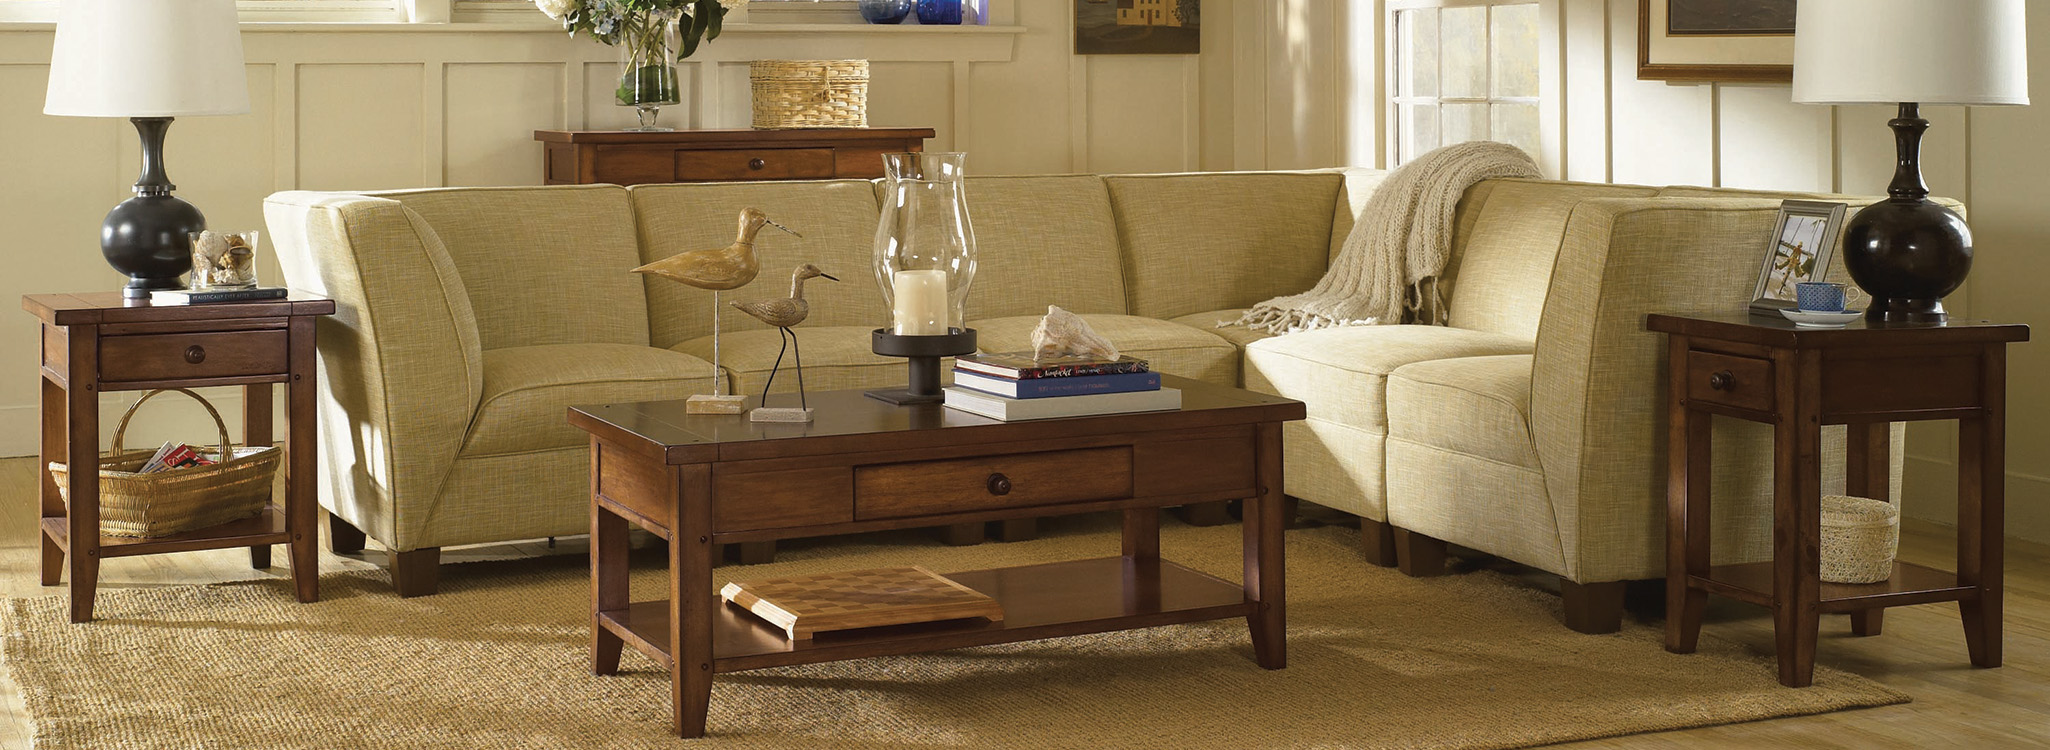 aspenhome accents occasionals room essentials accent table find the missing piece your living family occasional tables are thoughtfully designed fashionalble well functional high